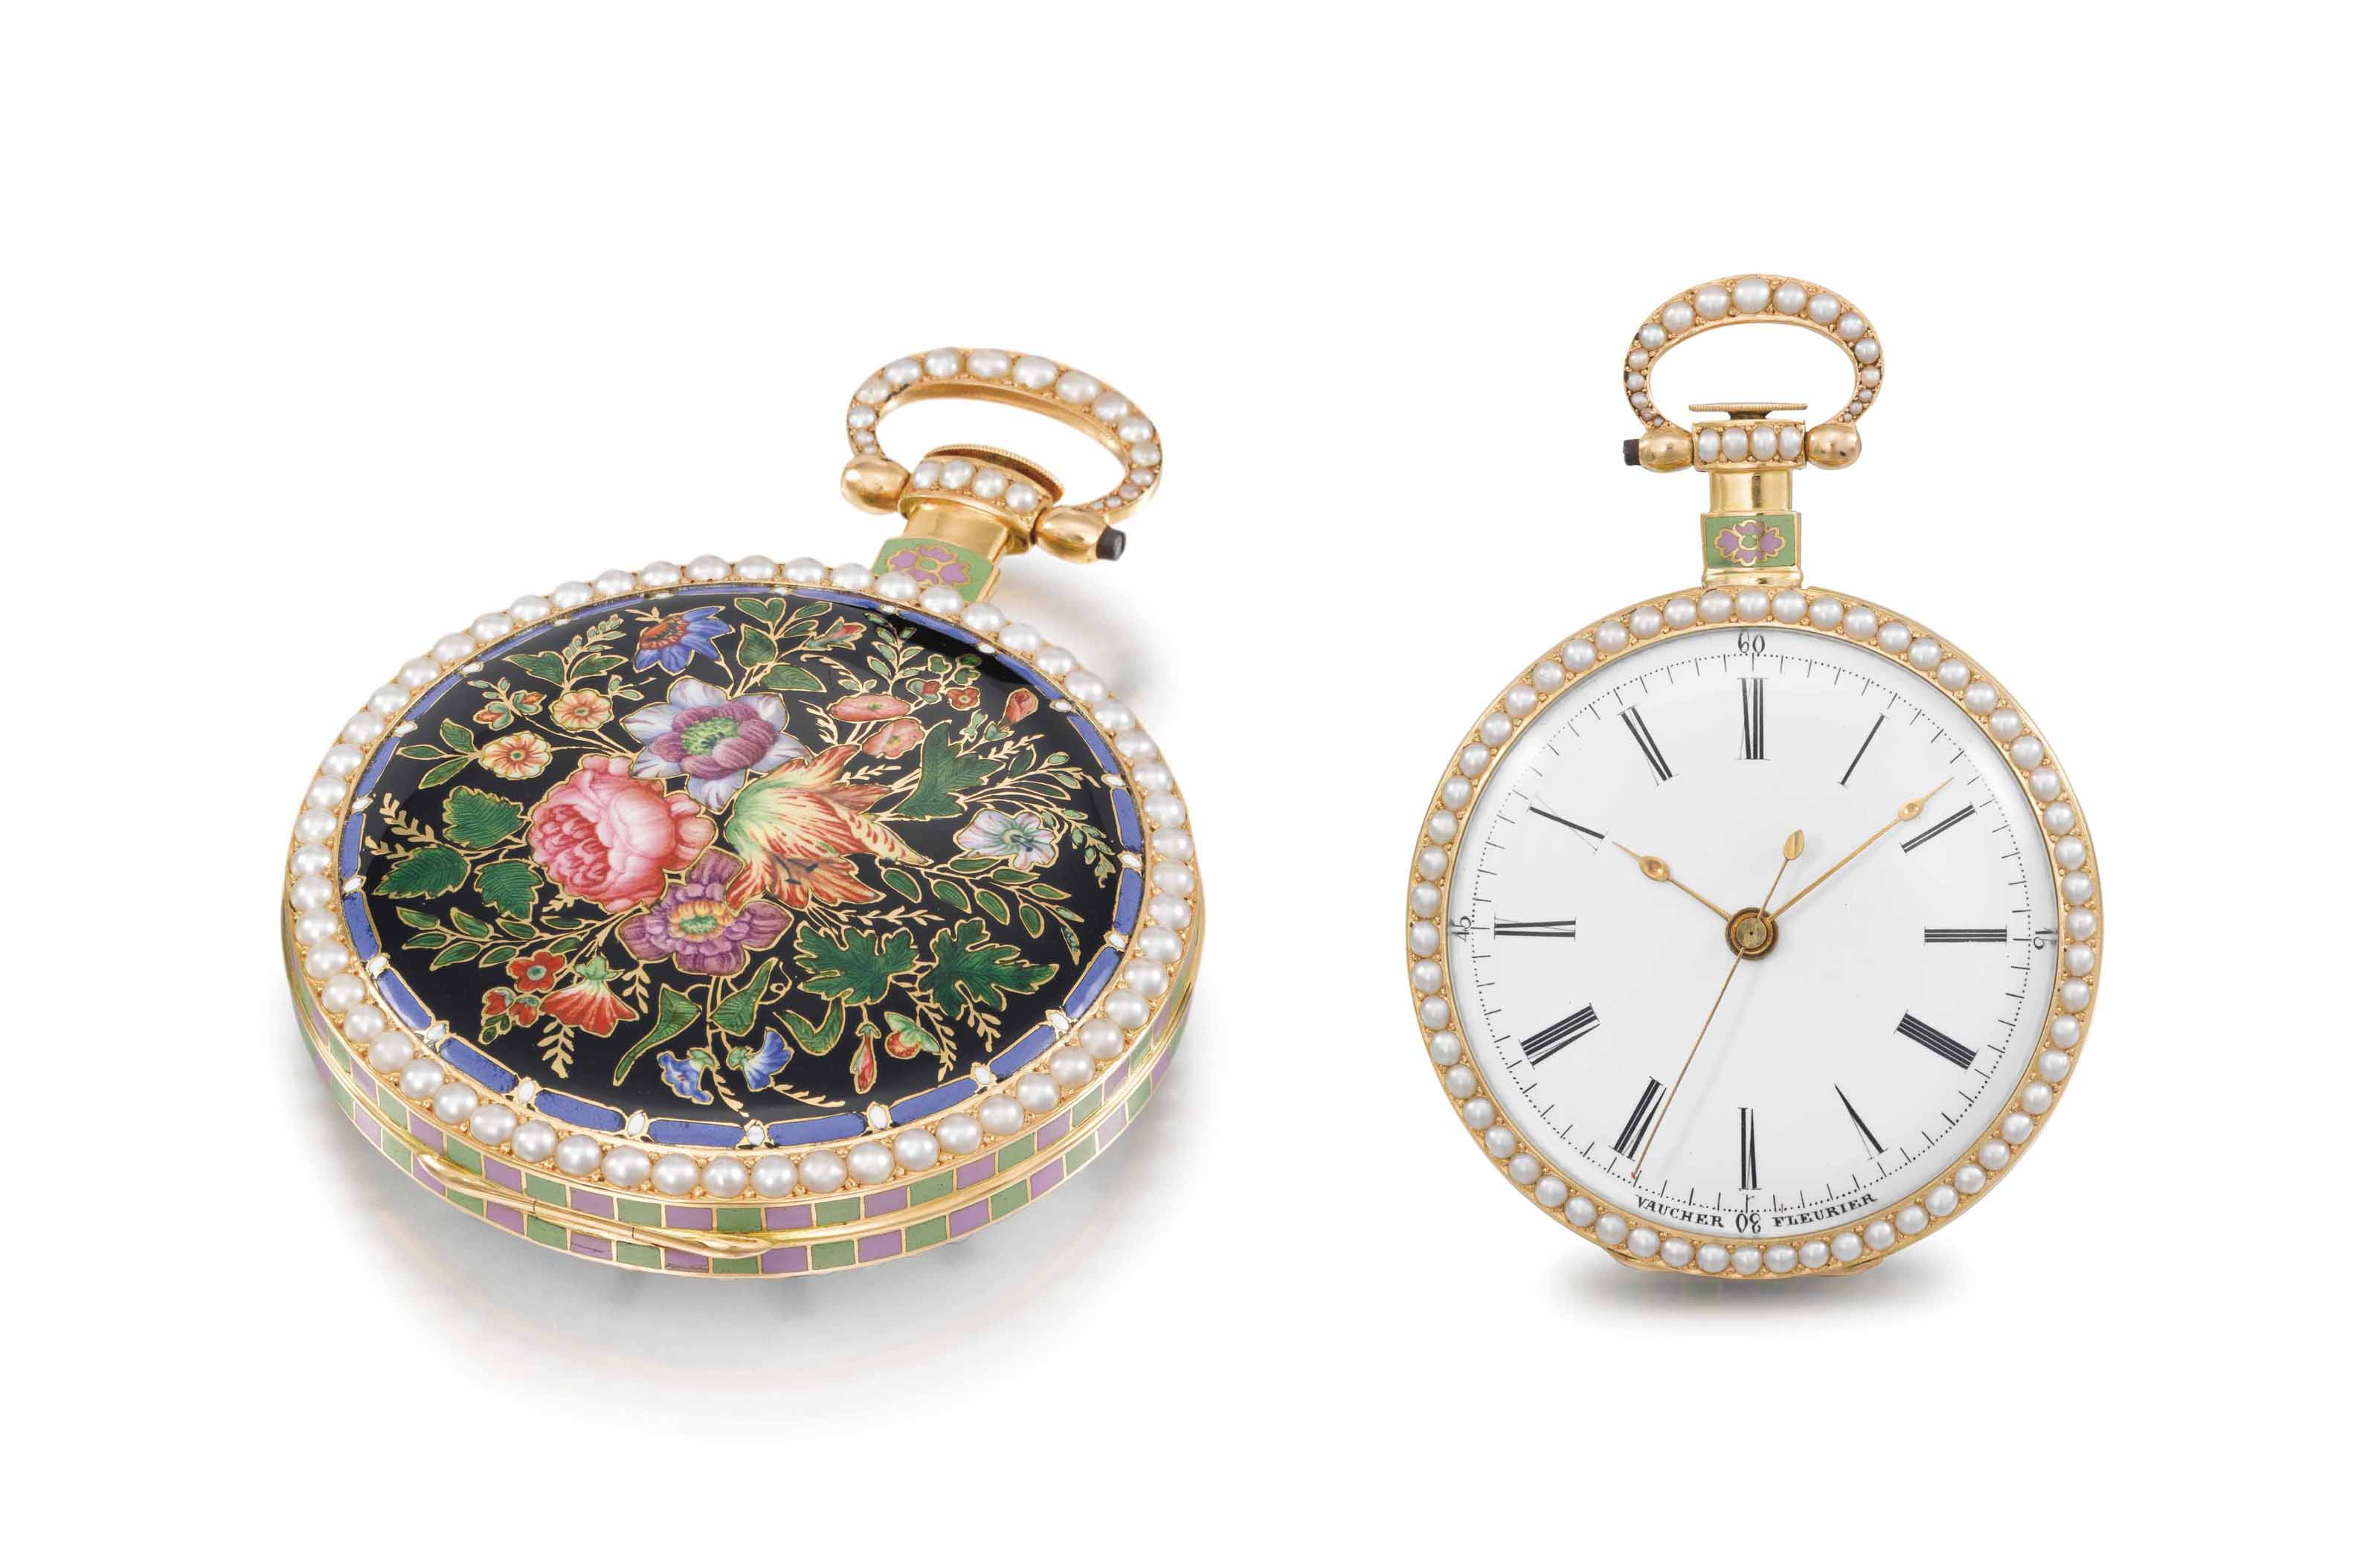 Vaucher Fleurier. An extremely fine, rare and decorative 18K gold, enamel and pearl-set openface centre seconds cylinder watch, made for the Chinese market